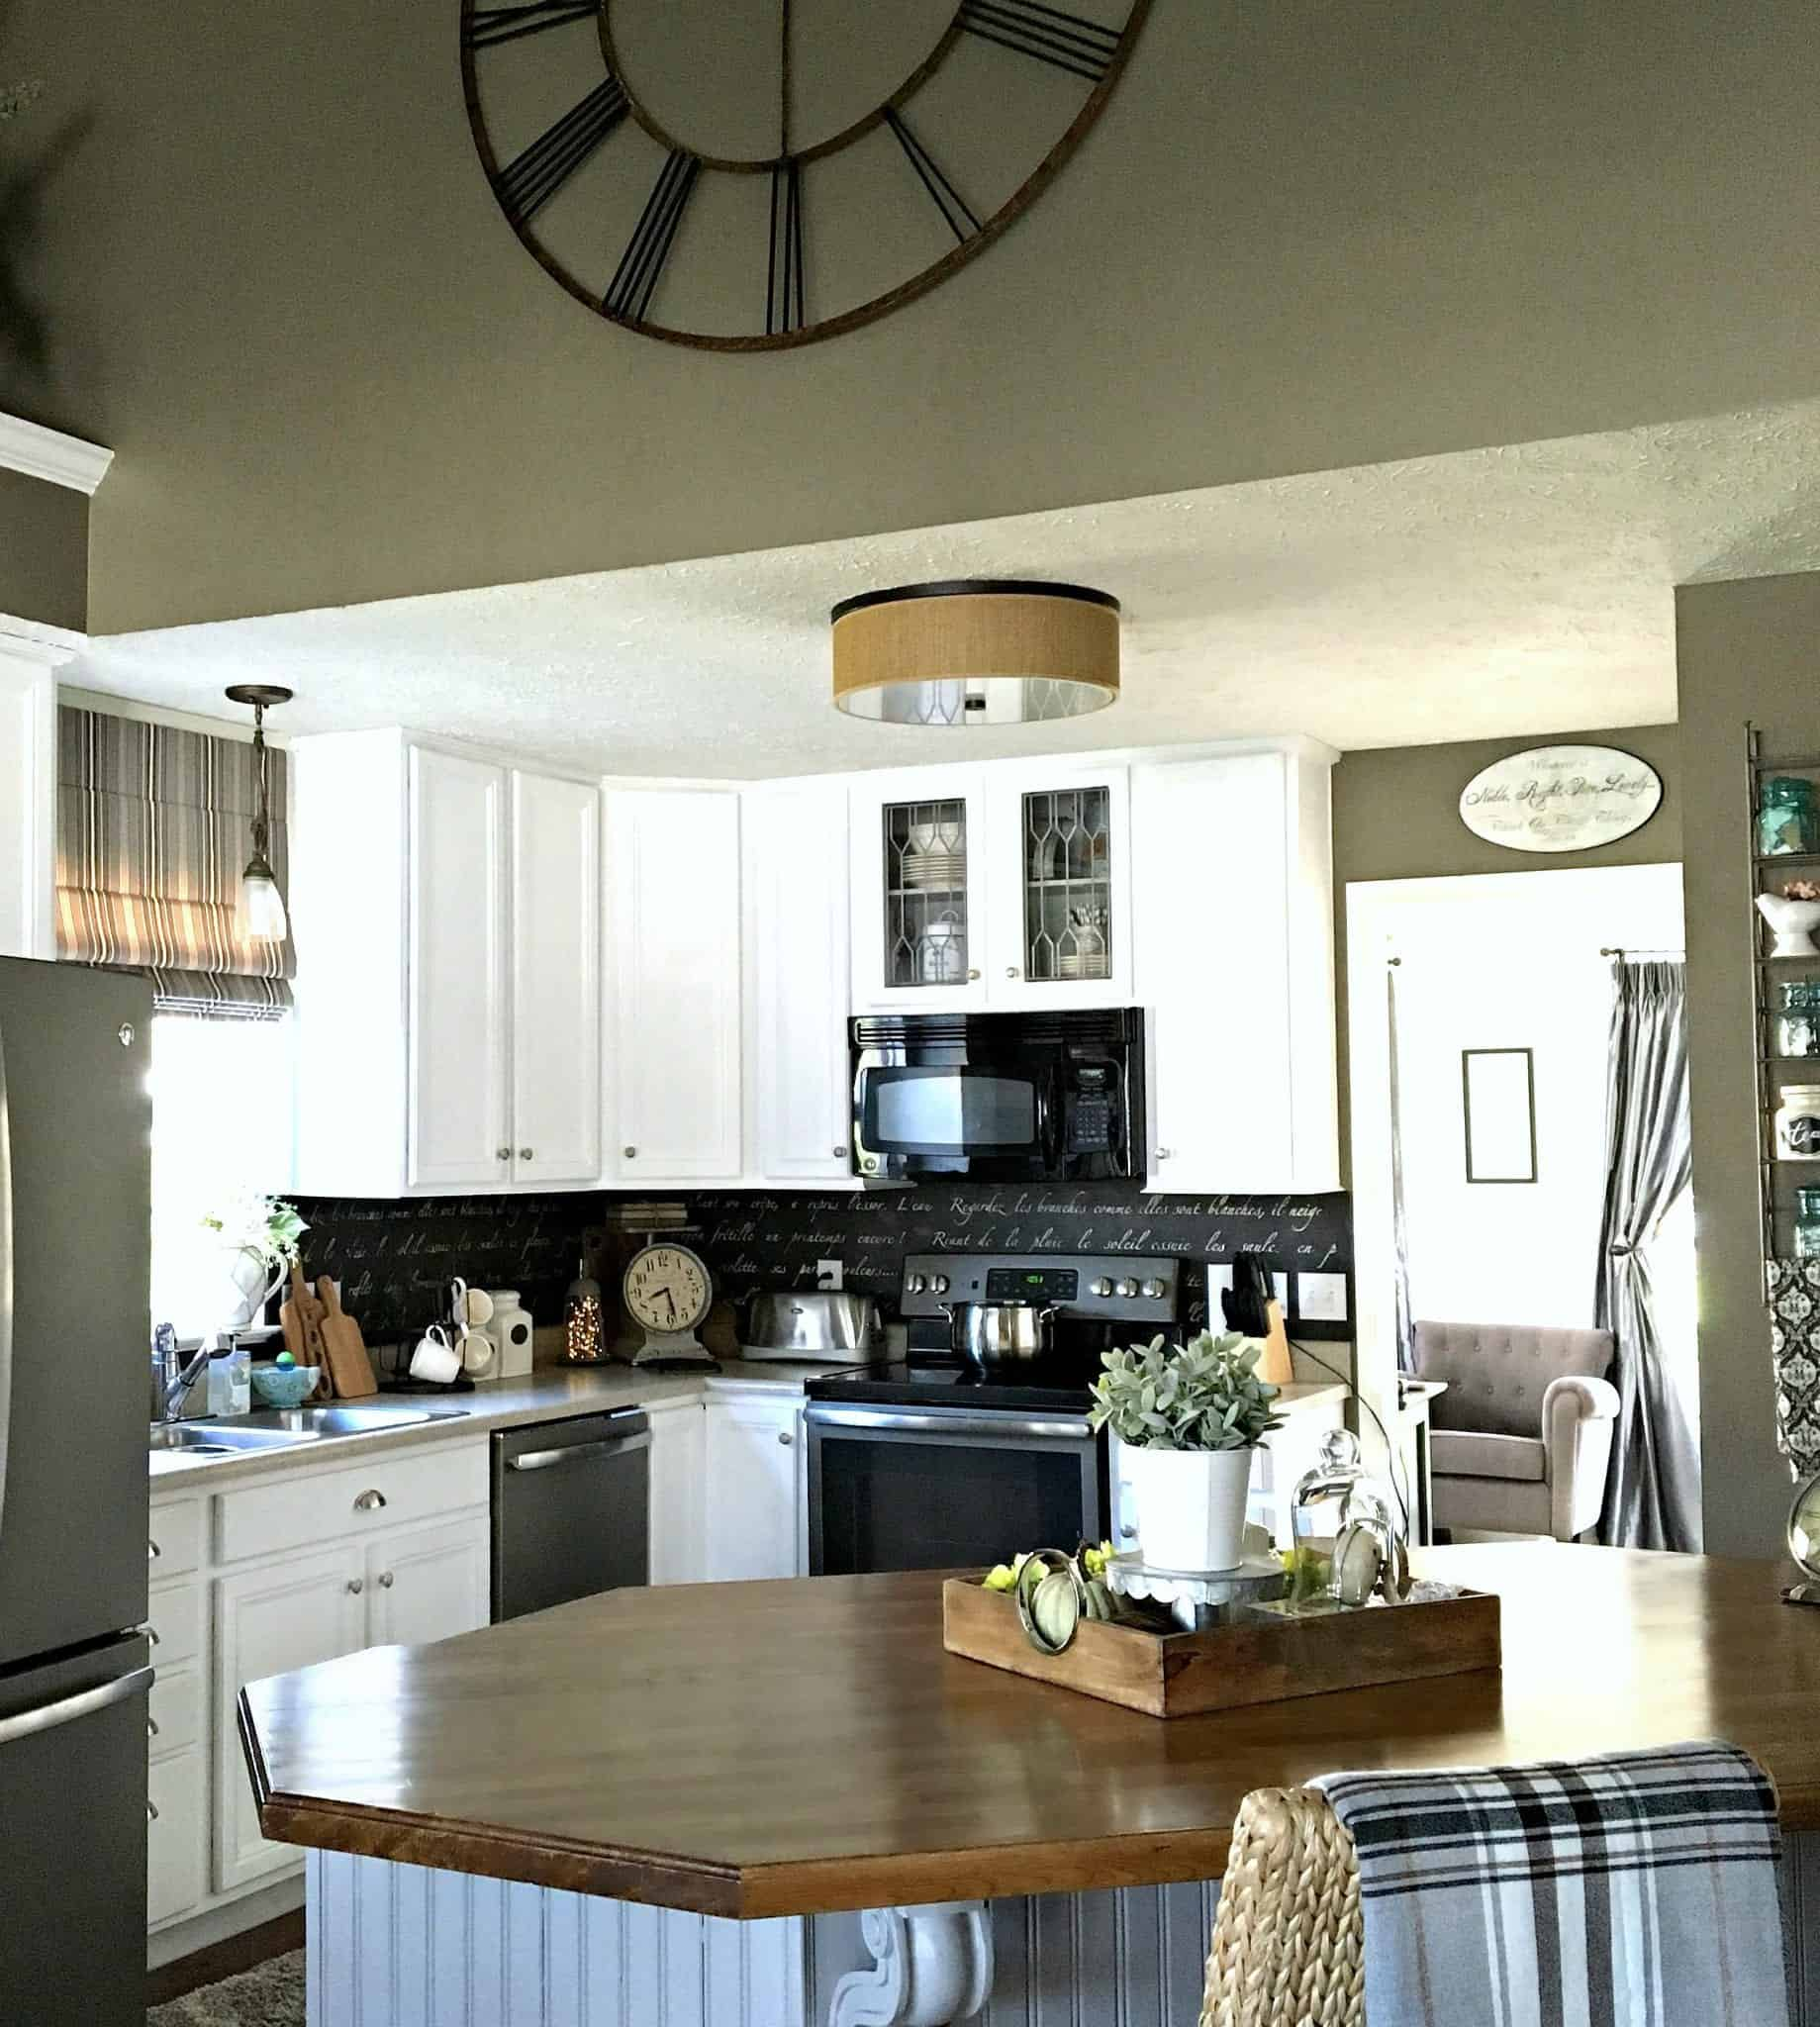 4 Tips On Painting Your Kitchen (+ 8 Embellishment Ideas